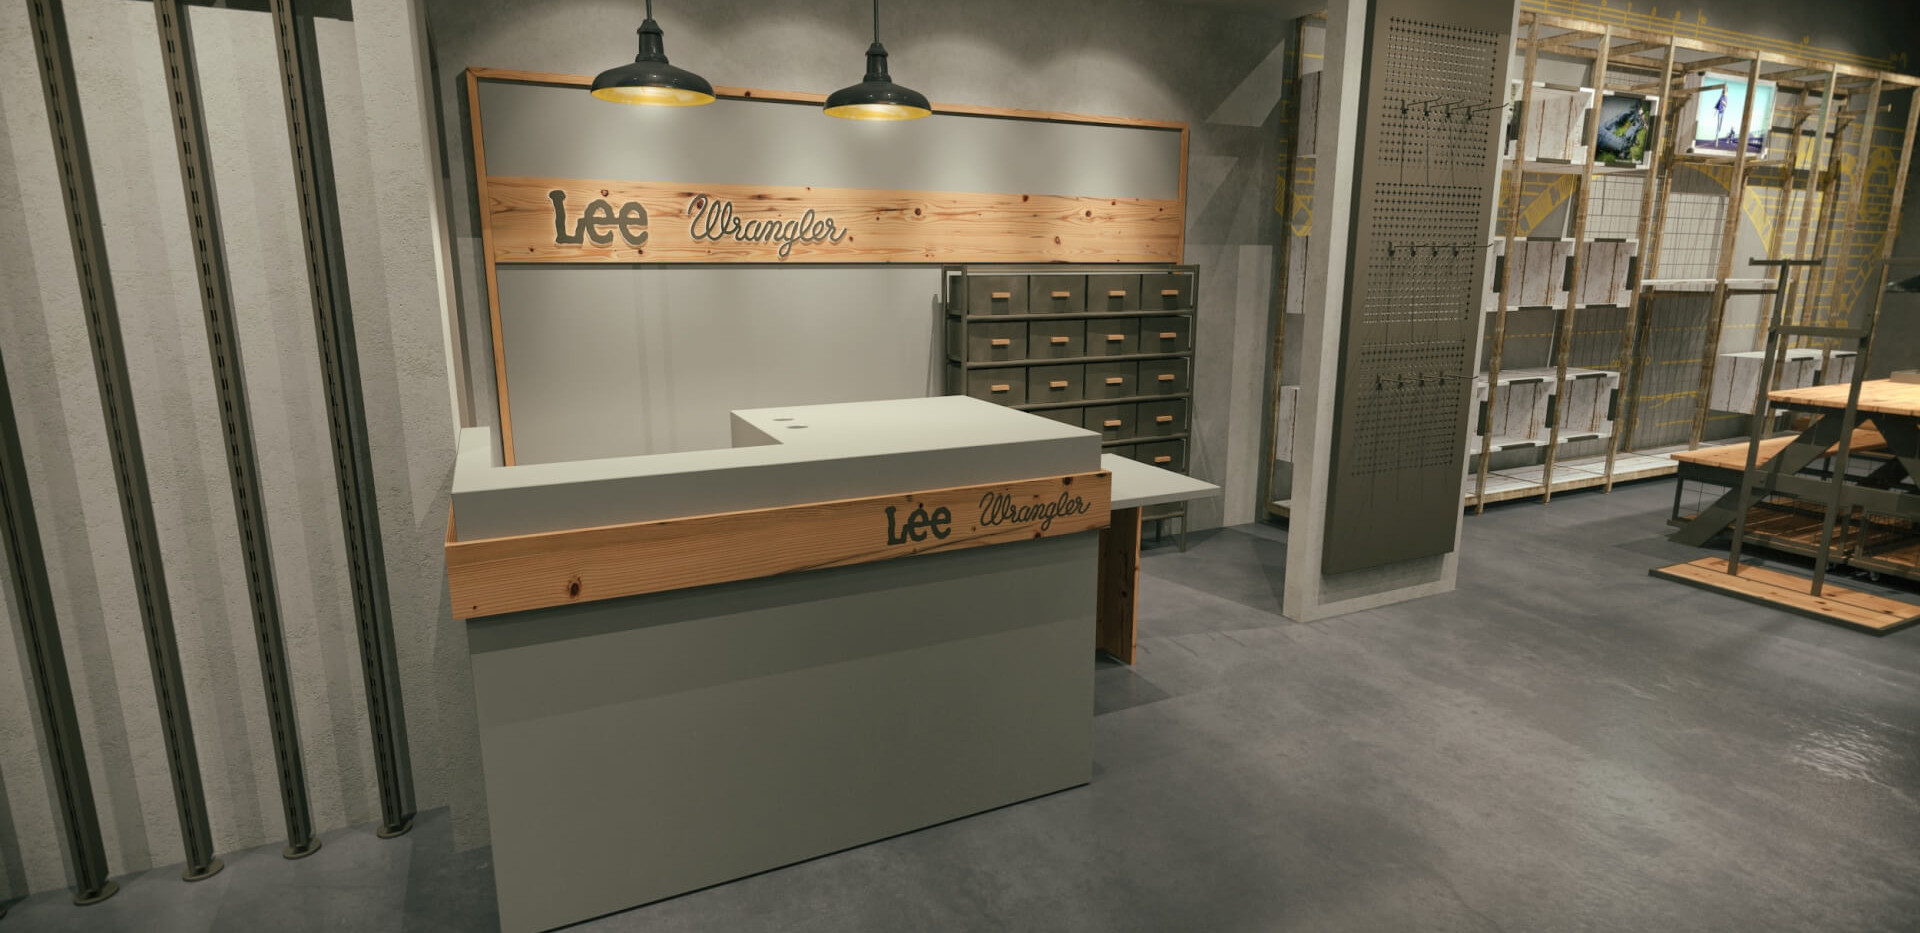 Lee Wrangler - Denim Store Shop Design-1